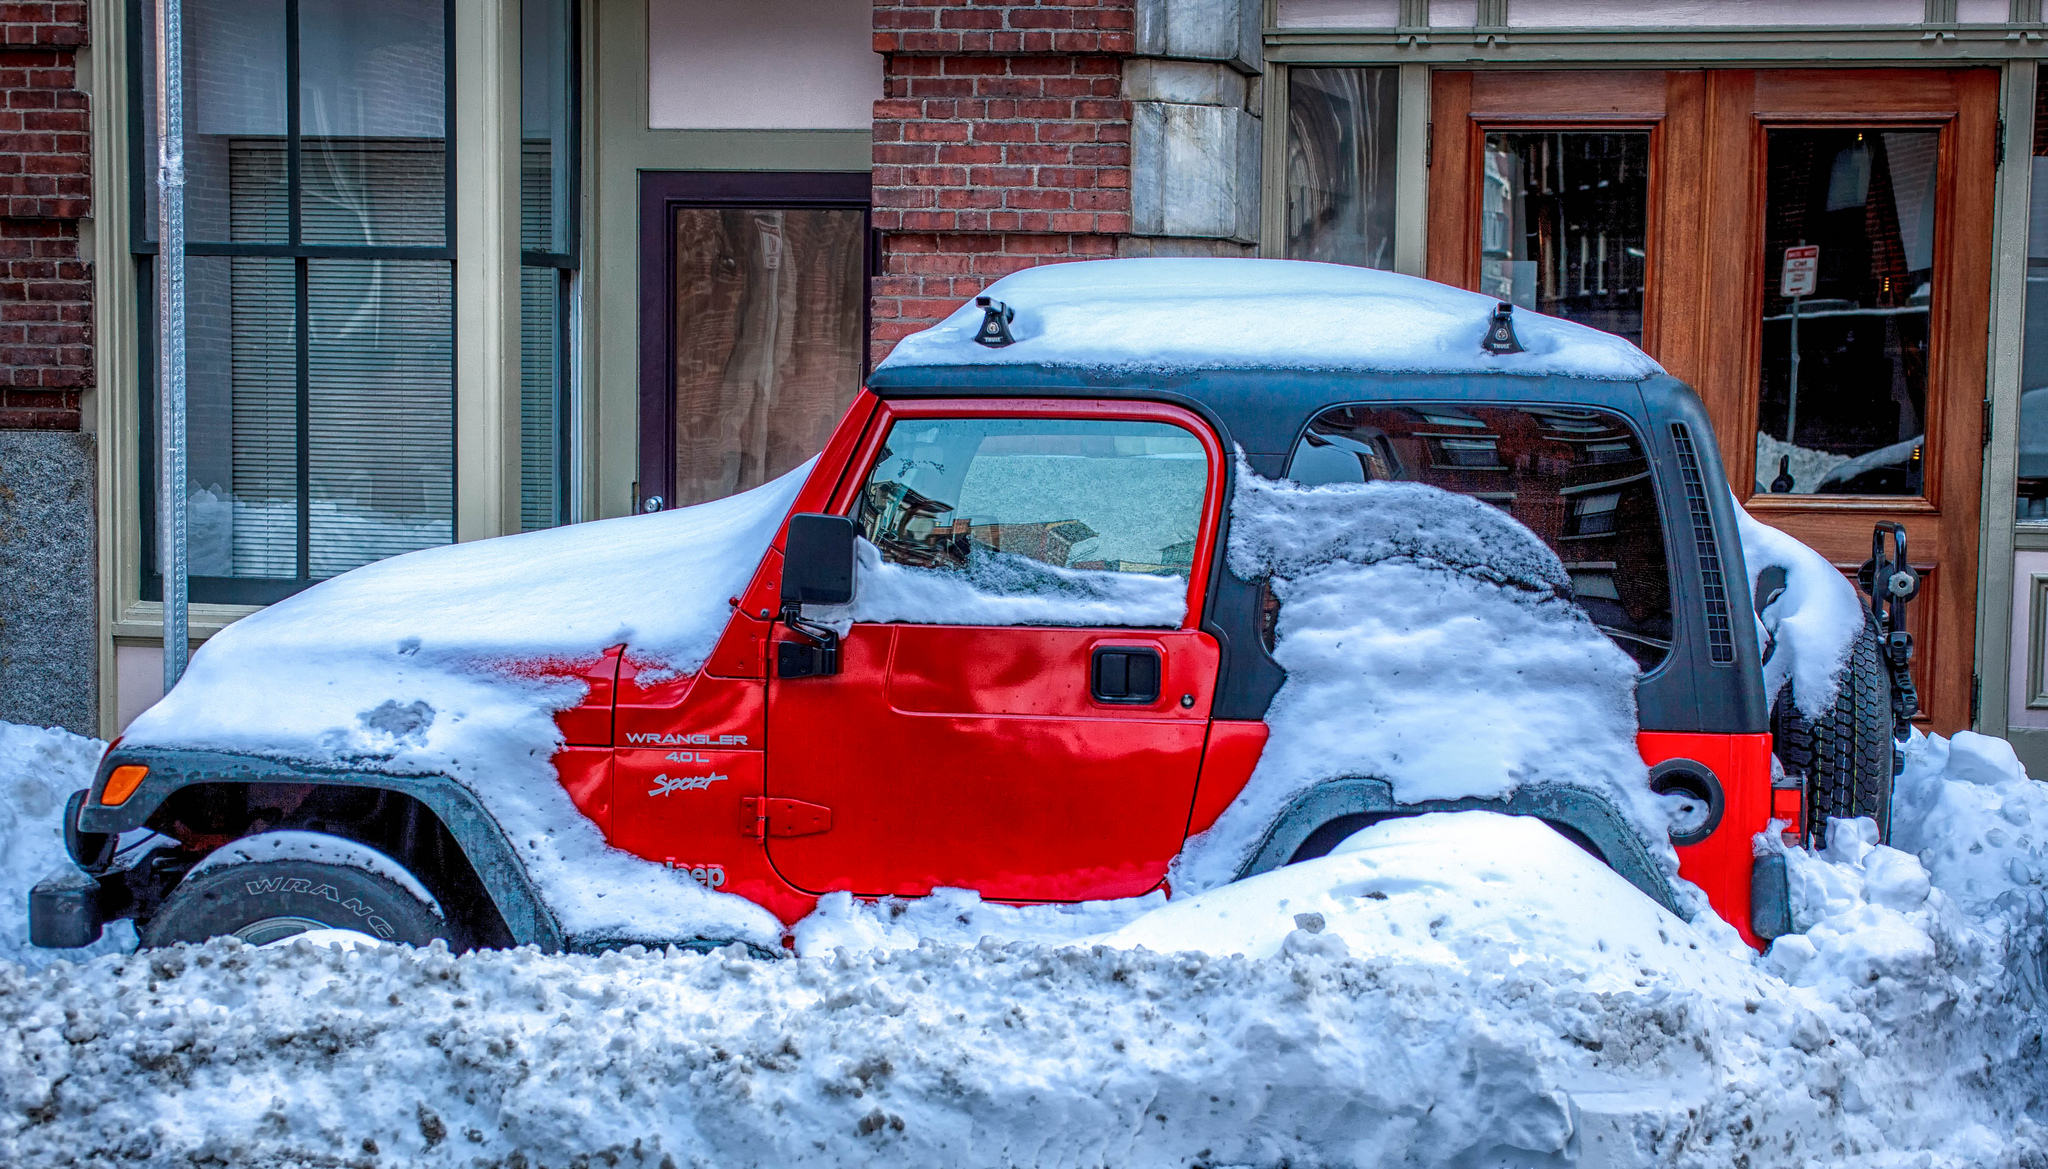 Winterized Life: 3 Ways To Beat The Snow With Tech